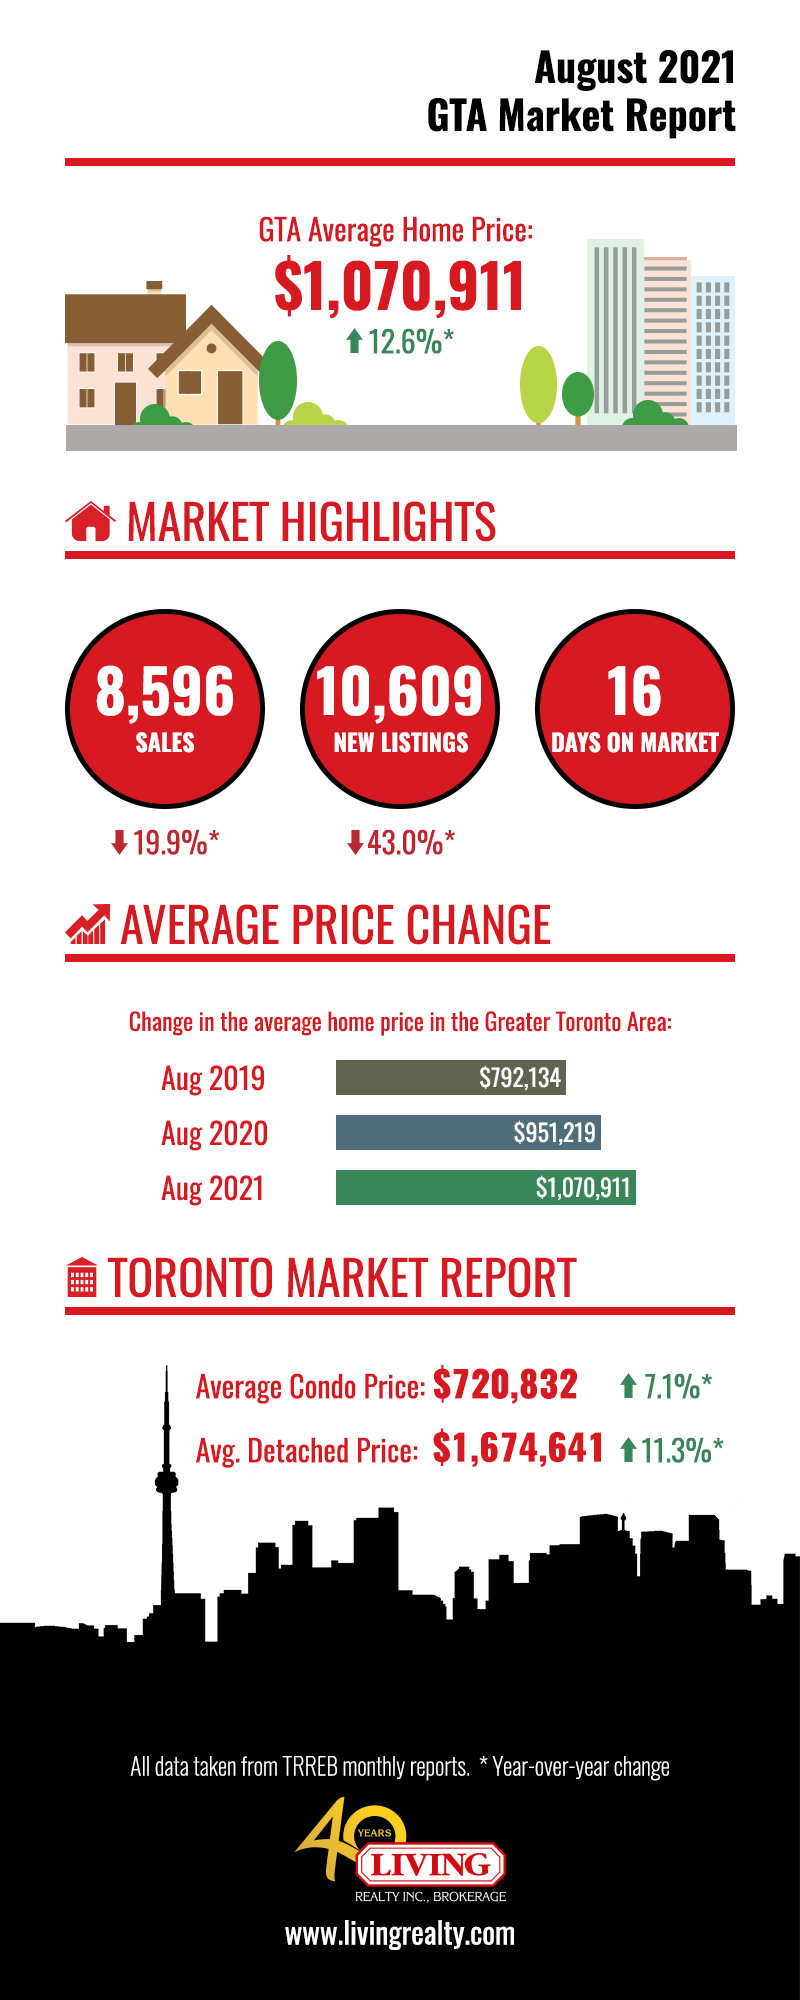 August 2021 housing market numbers for GTA.